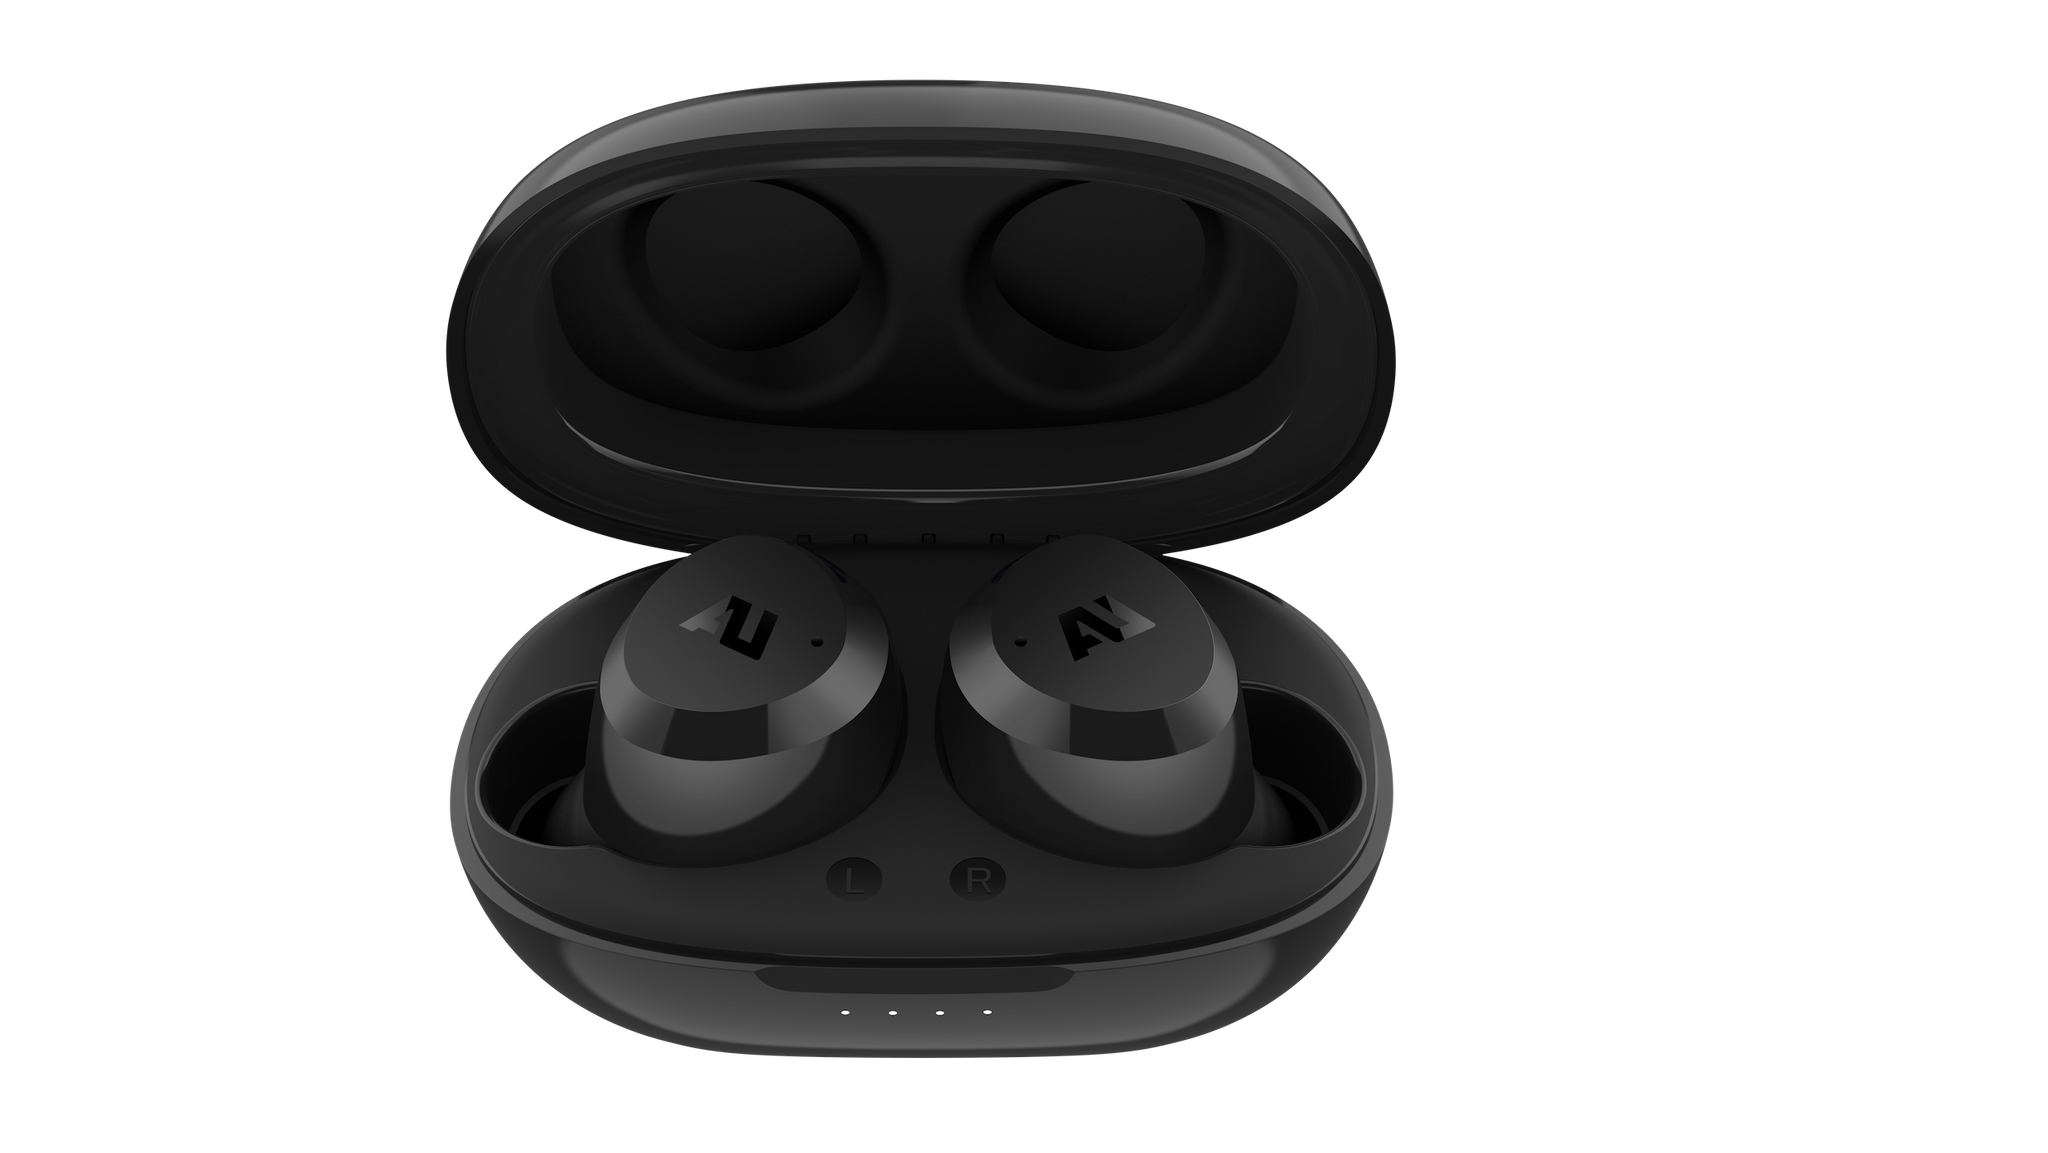 AU-Stream Hybrid | True Wireless Hybrid Noise-Canceling Earbud